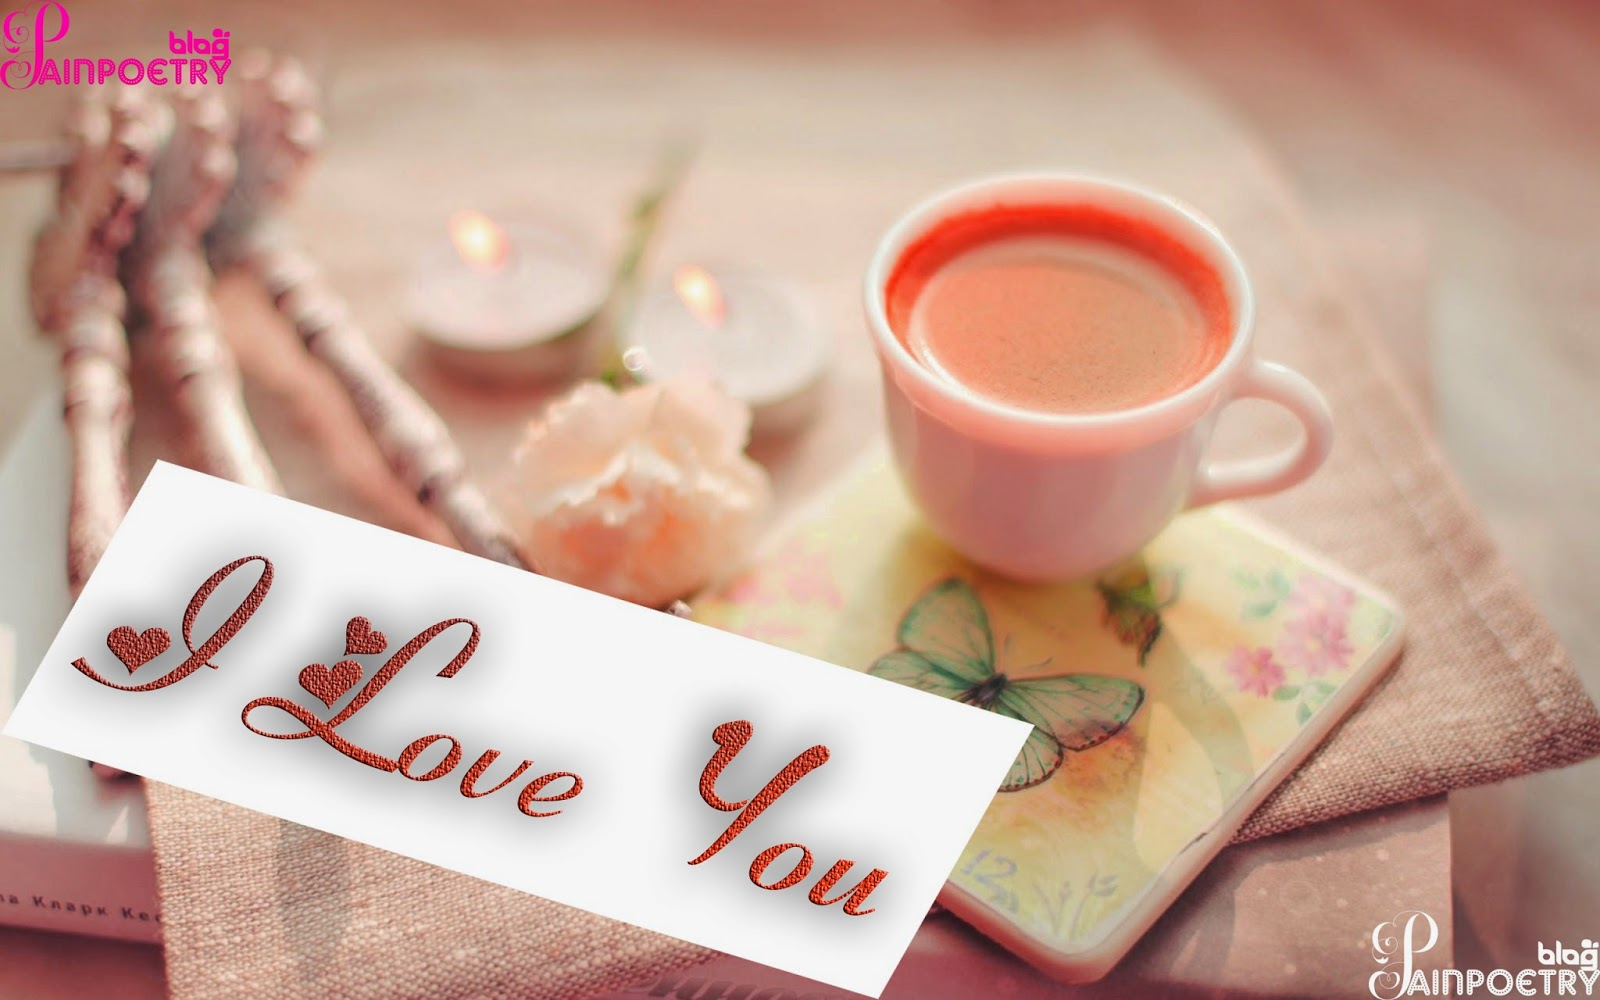 Love-Wishes-Image-With-A Of-Tea-HD-Wide